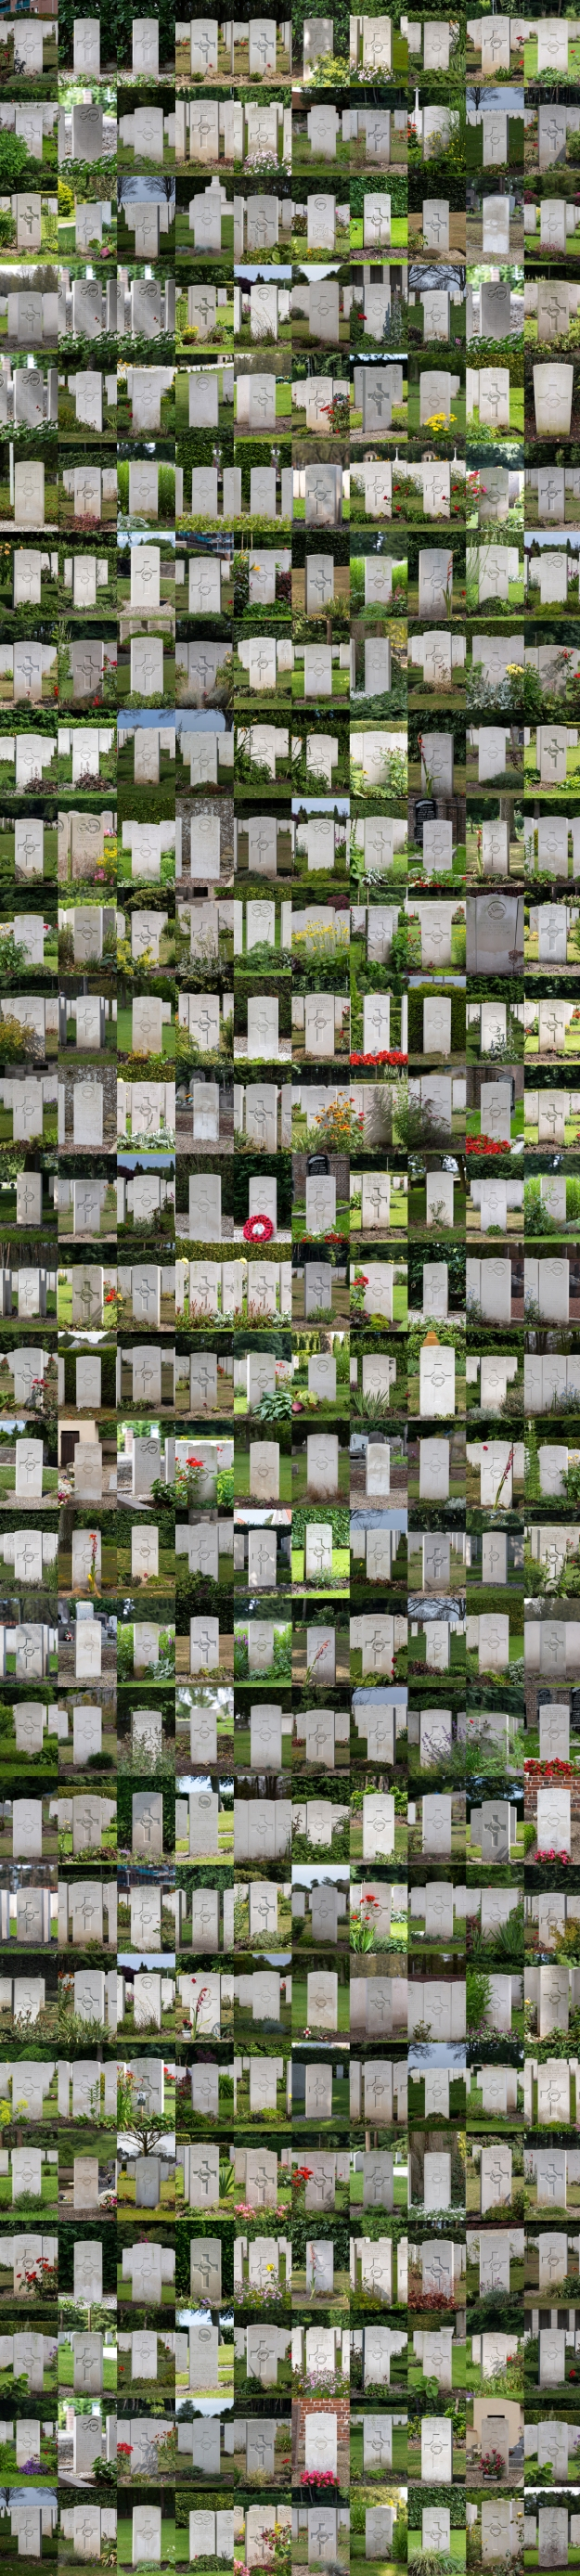 NZ war graves project